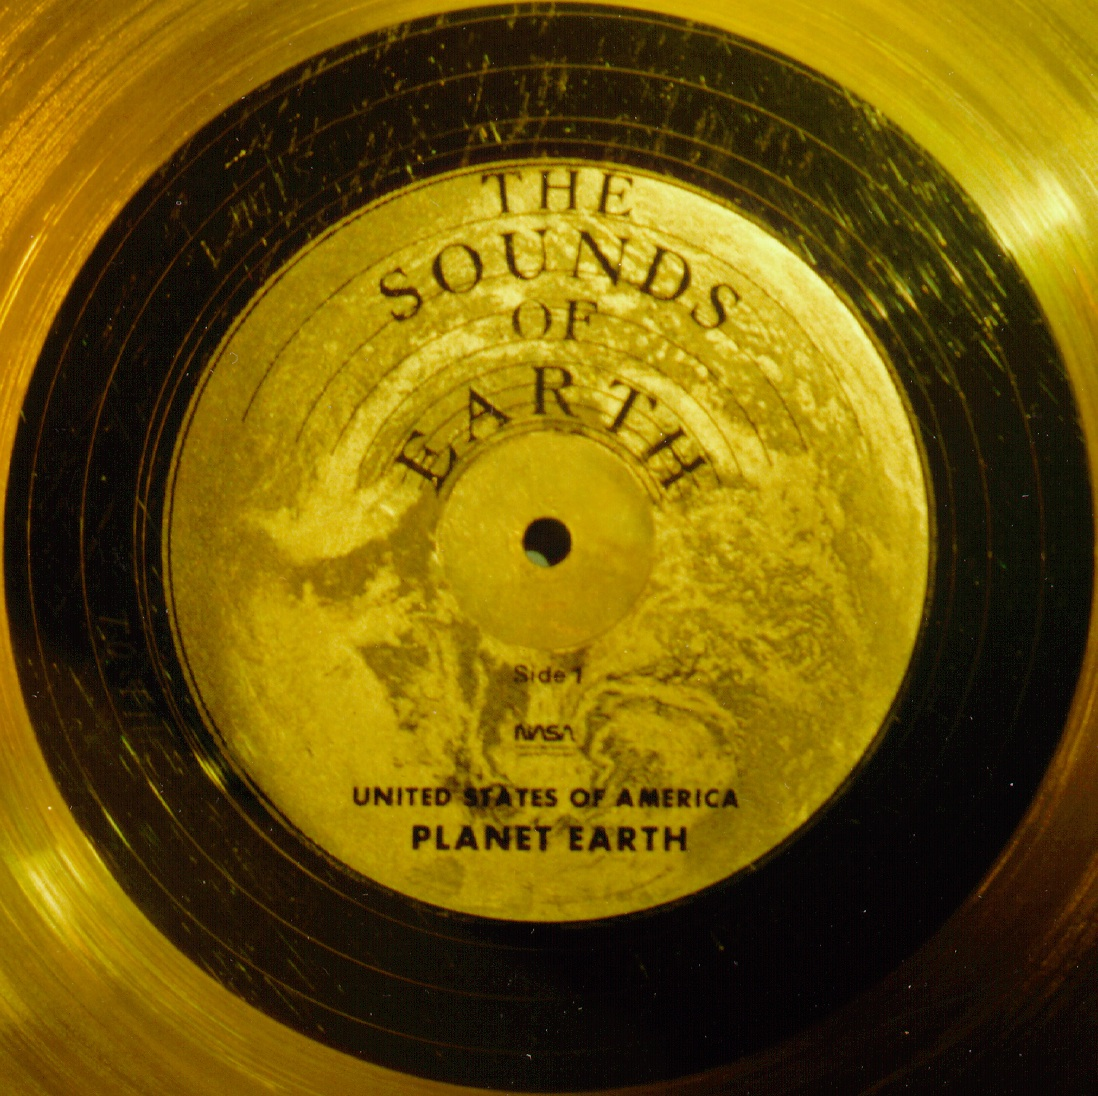 A Shot In The Dark  The Sounds Of Earth  Interstellar